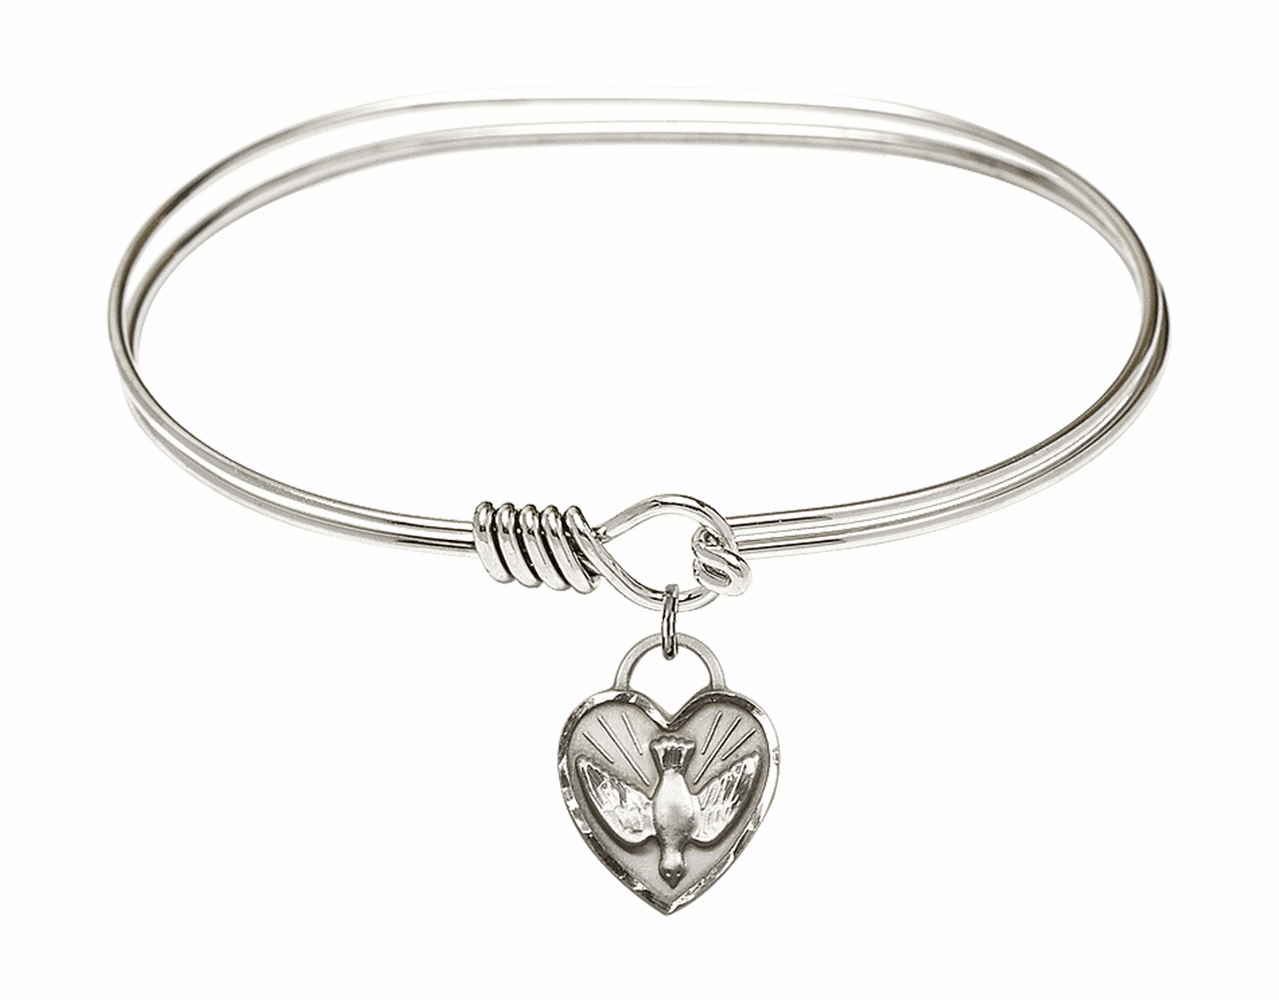 Round Eye Hook Bangle Bracelet w/Dove Confirmation Heart Sterling Silver Charm by Bliss Mfg